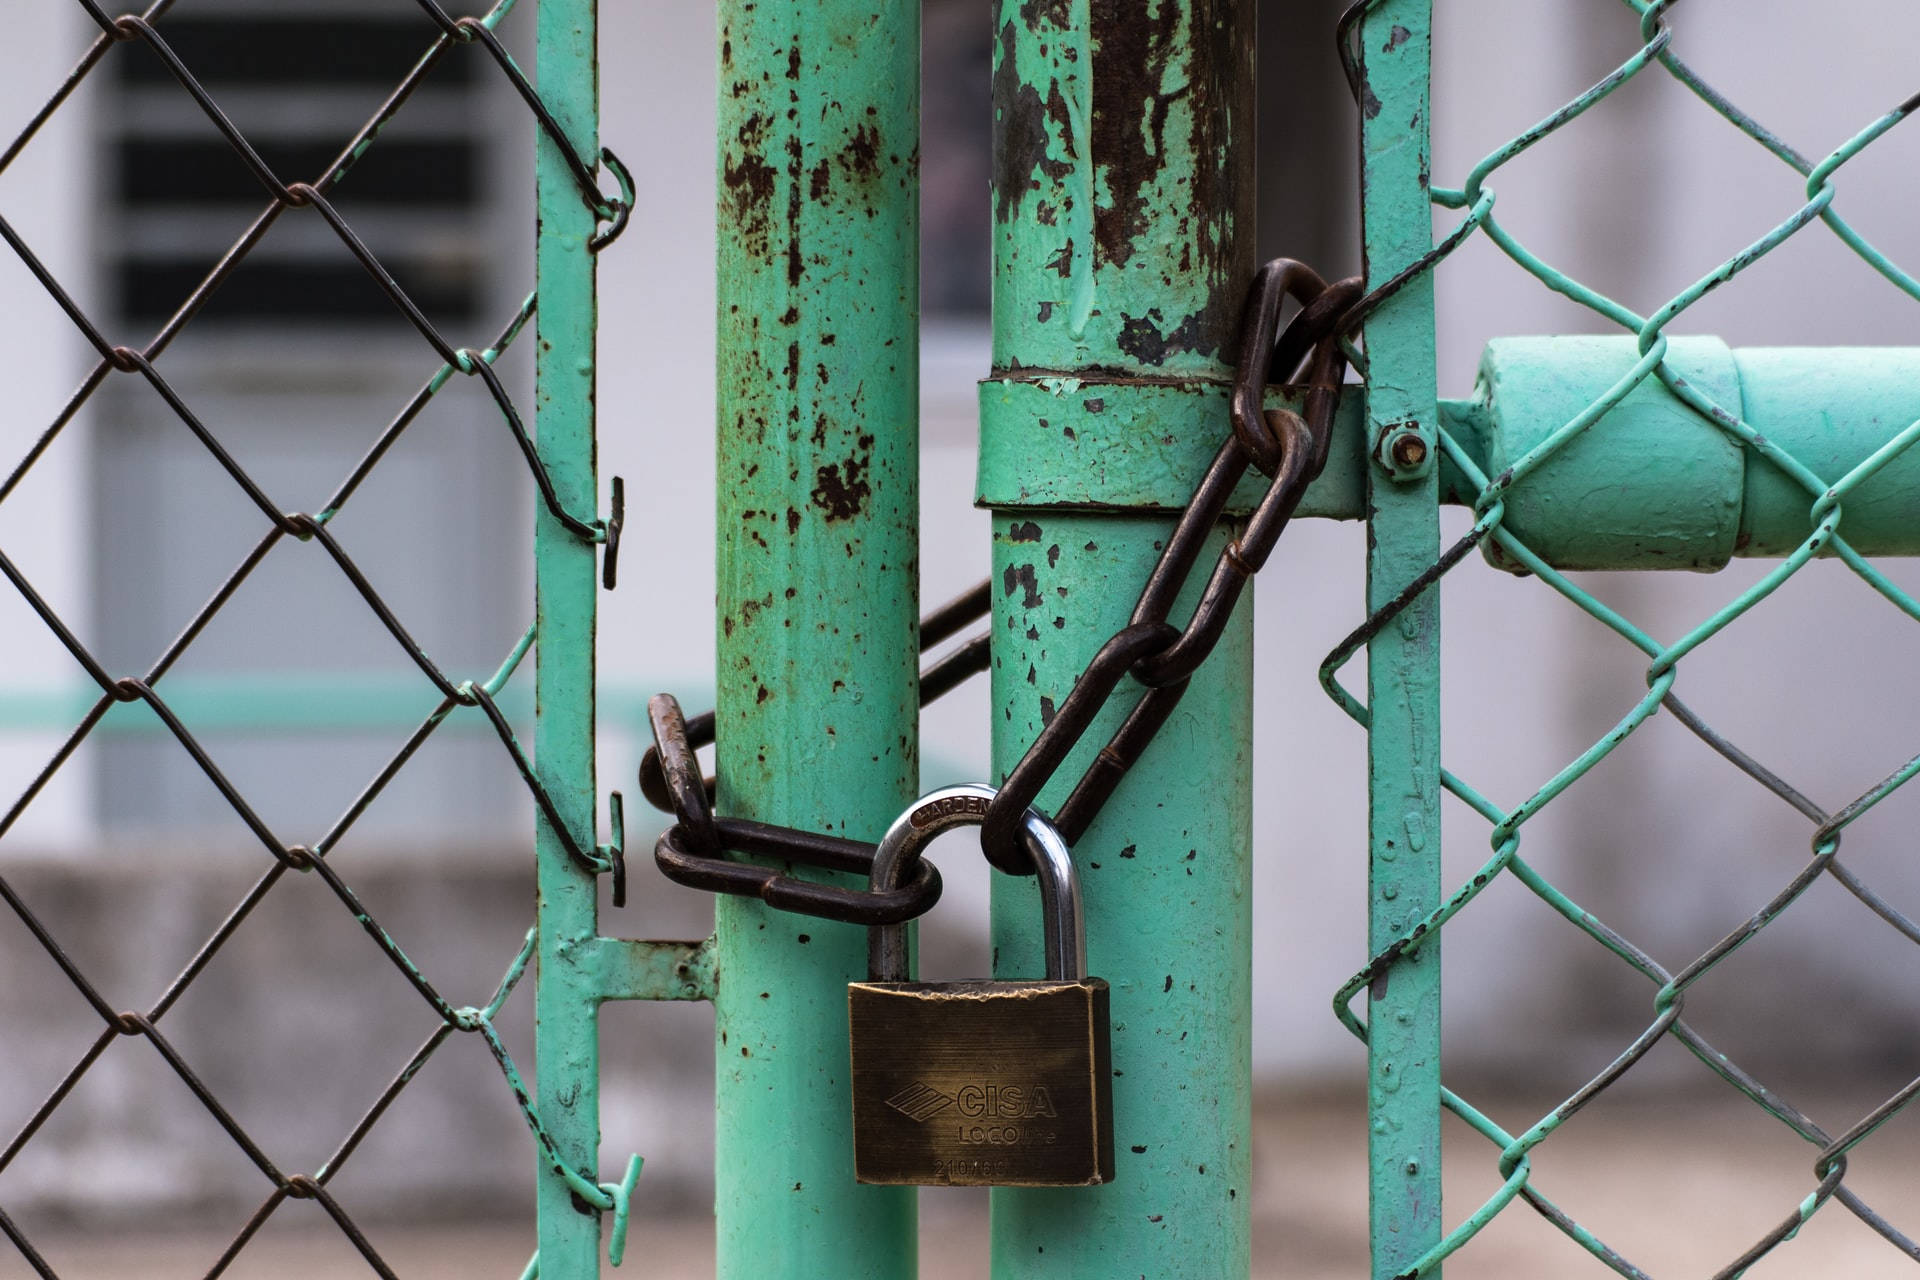 padlock securing green gate with a chain